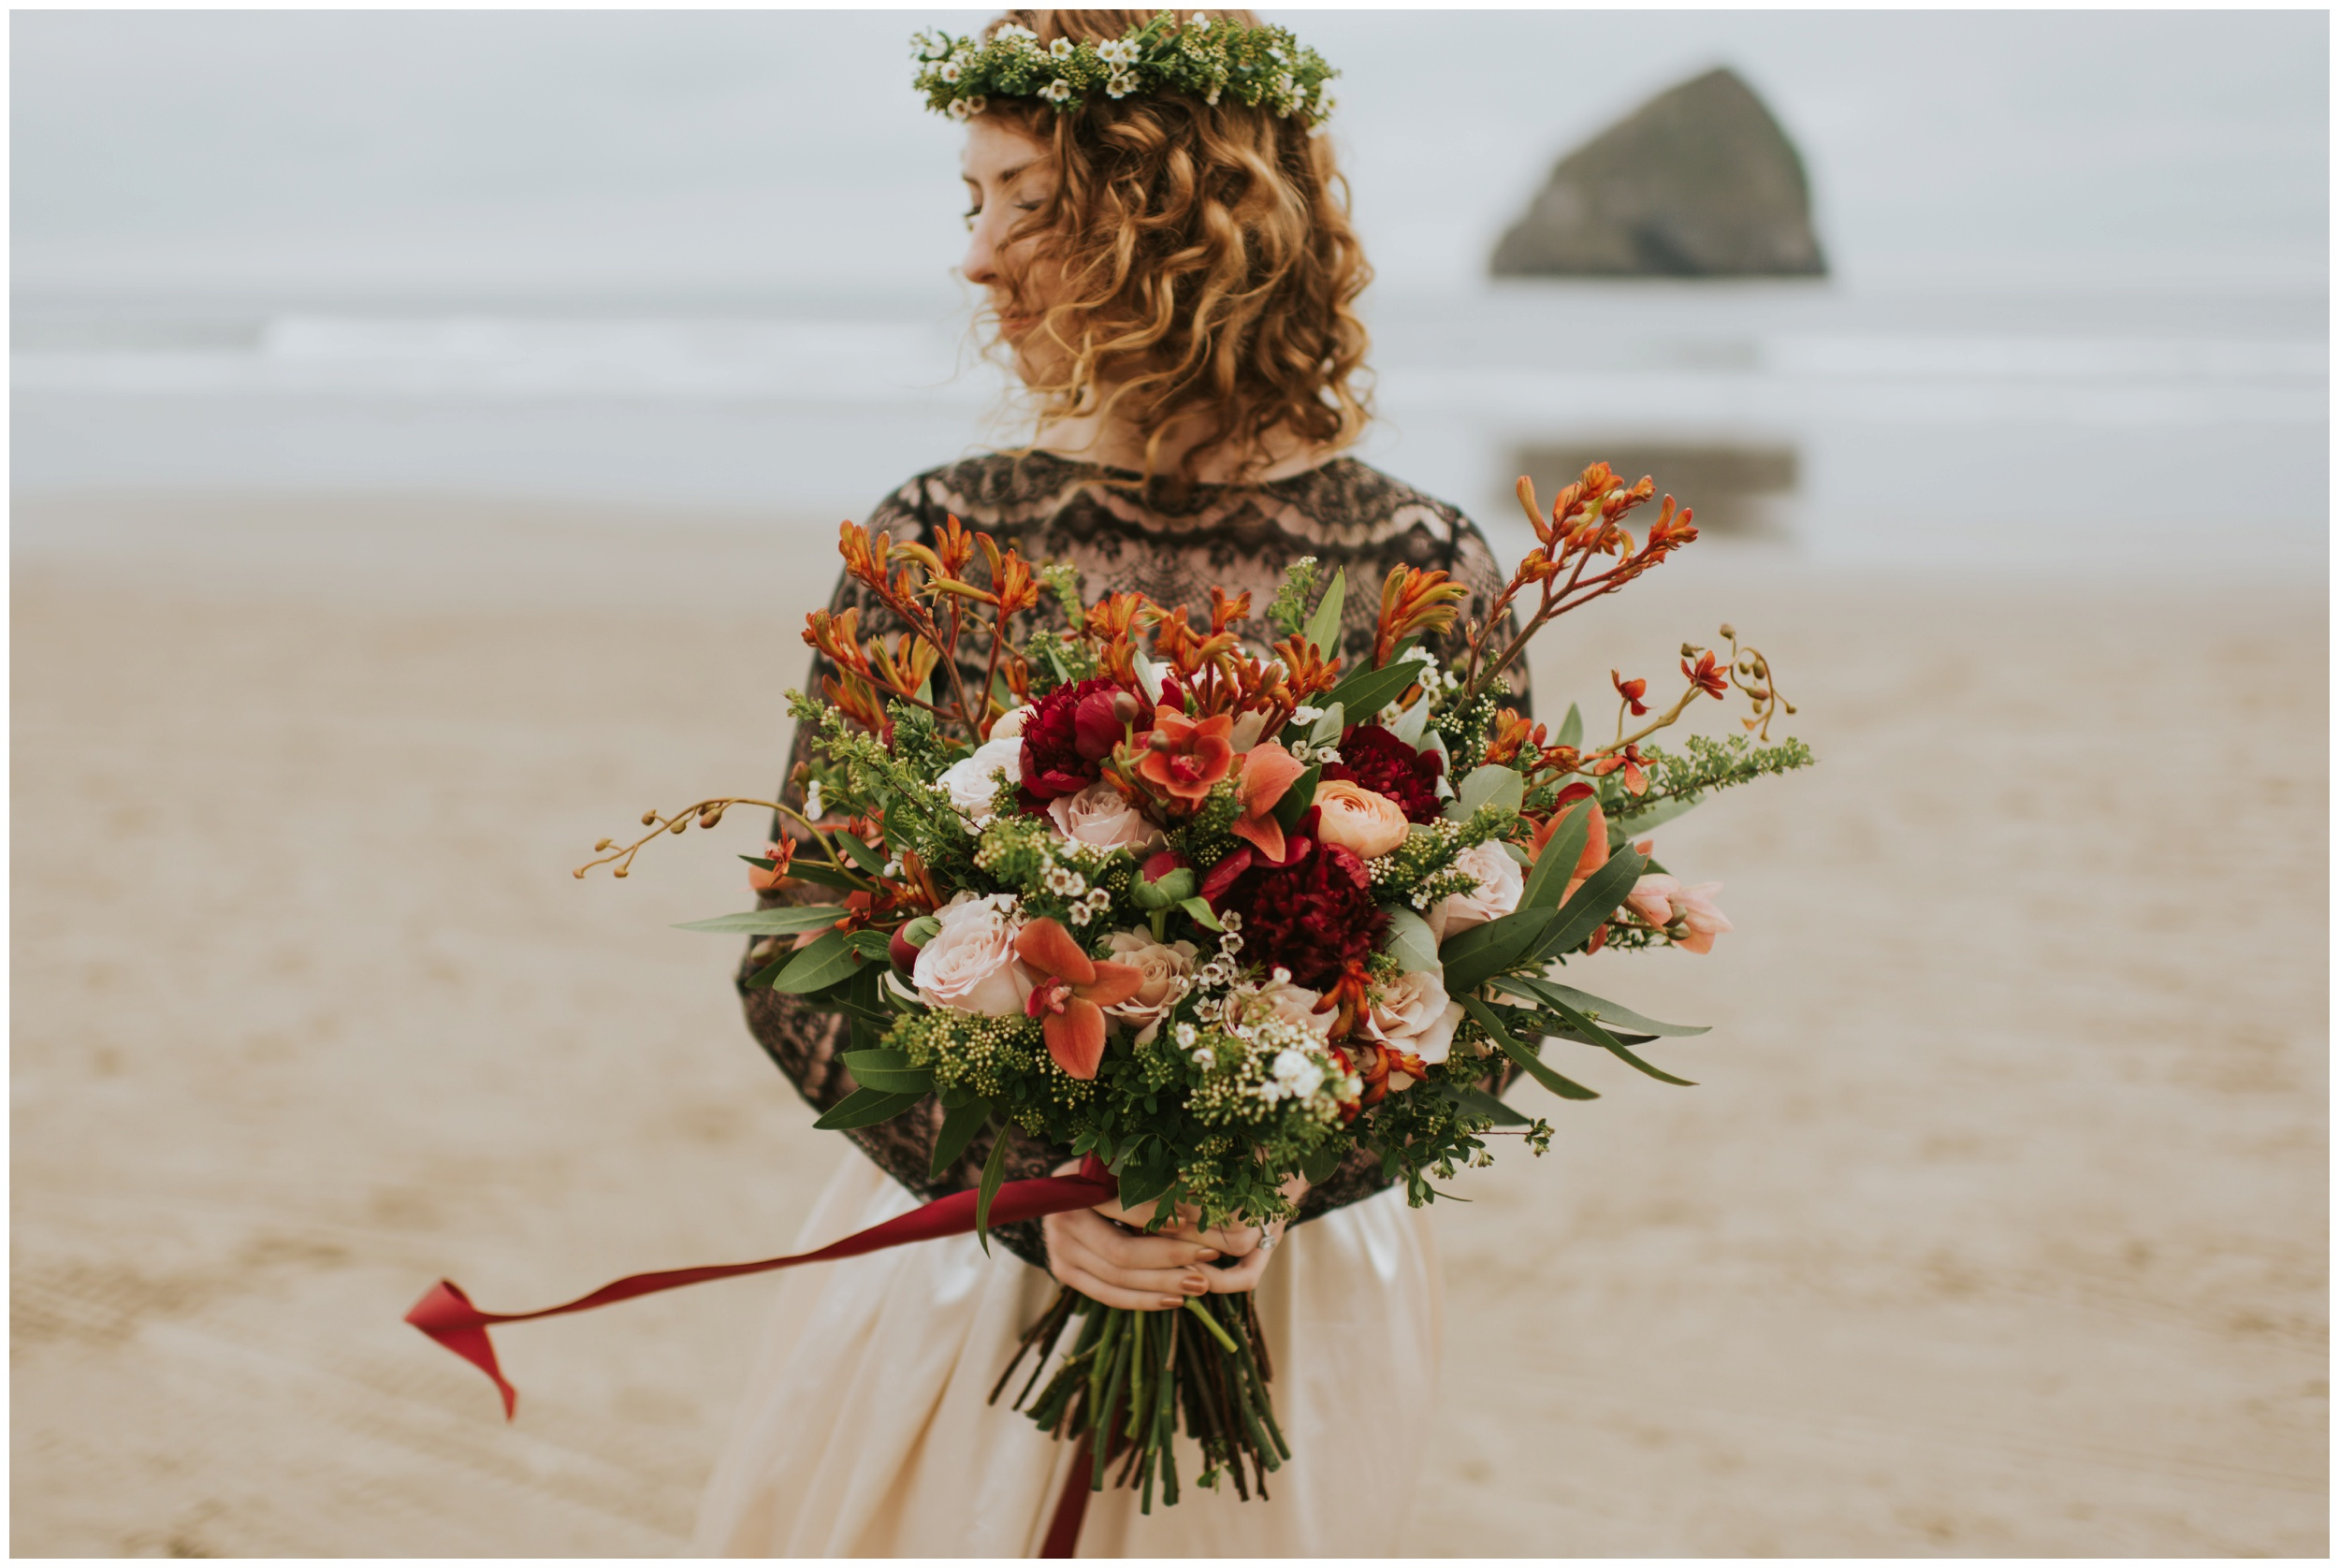 Bride holding bouquet on the bridepacific coast | Oregon Wedding Photographer www.riversandroadsphotography.com